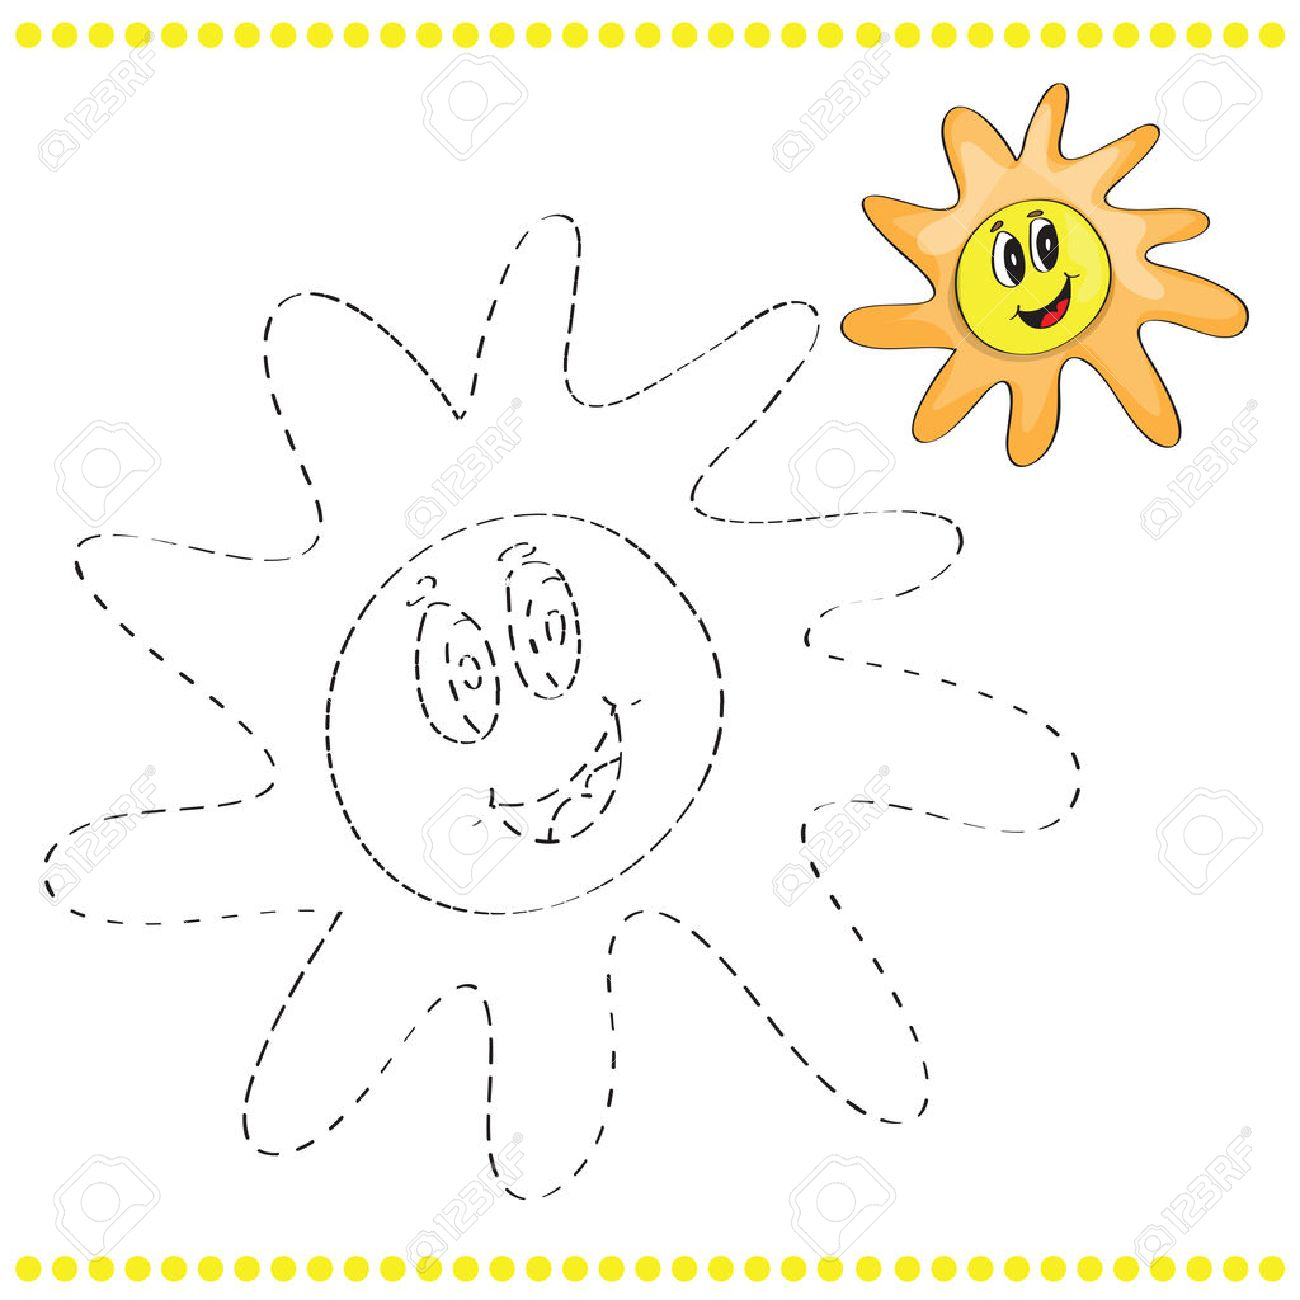 Connect The Dots And Coloring Page With Sun Stock Vector